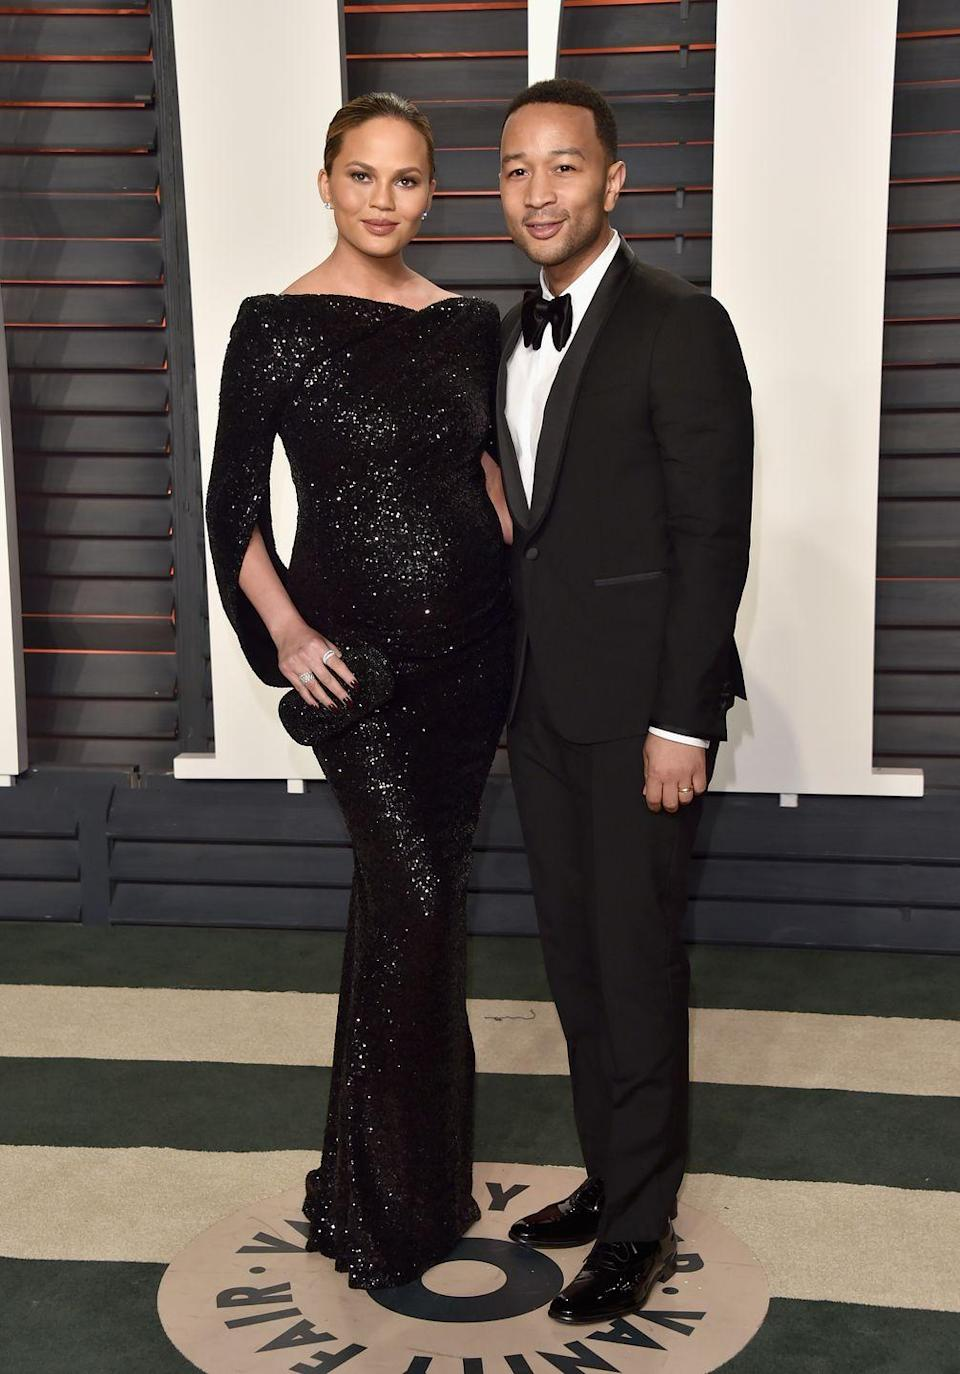 <p>After the show, the couple hit up the Oscars Vanity Fair afterparty with Teigen stunning in a black sequinned gown.</p>